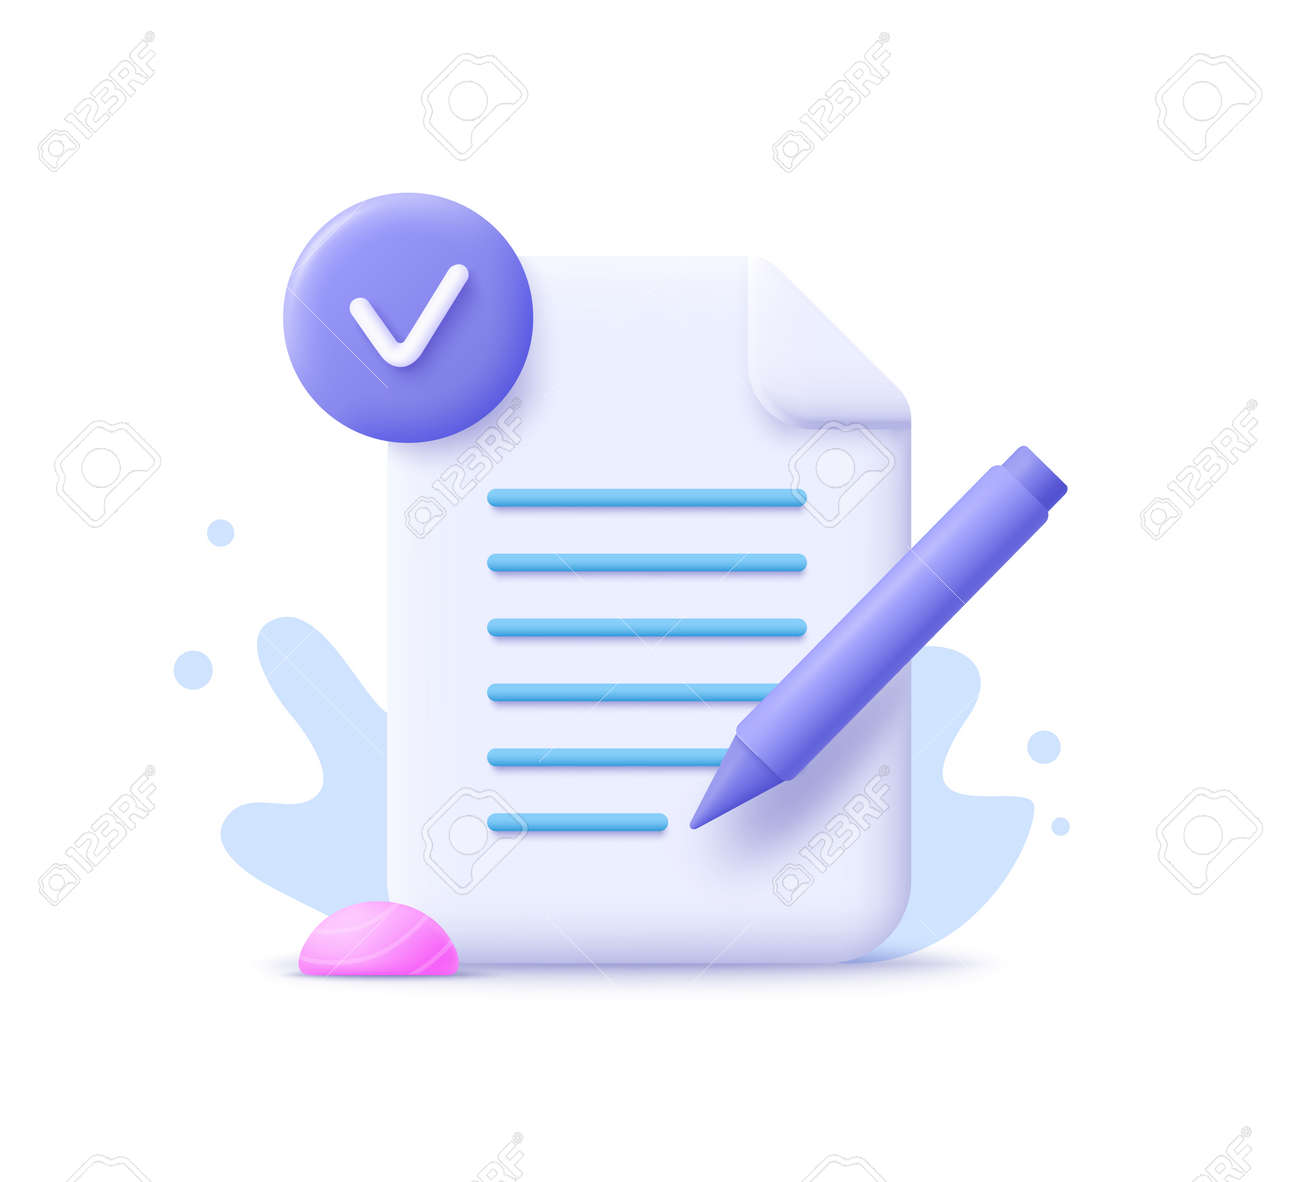 Copywriting, writing icon. Creative writing and storytelling, education concept. Writing education concept. 3d vector illustration. - 171516839